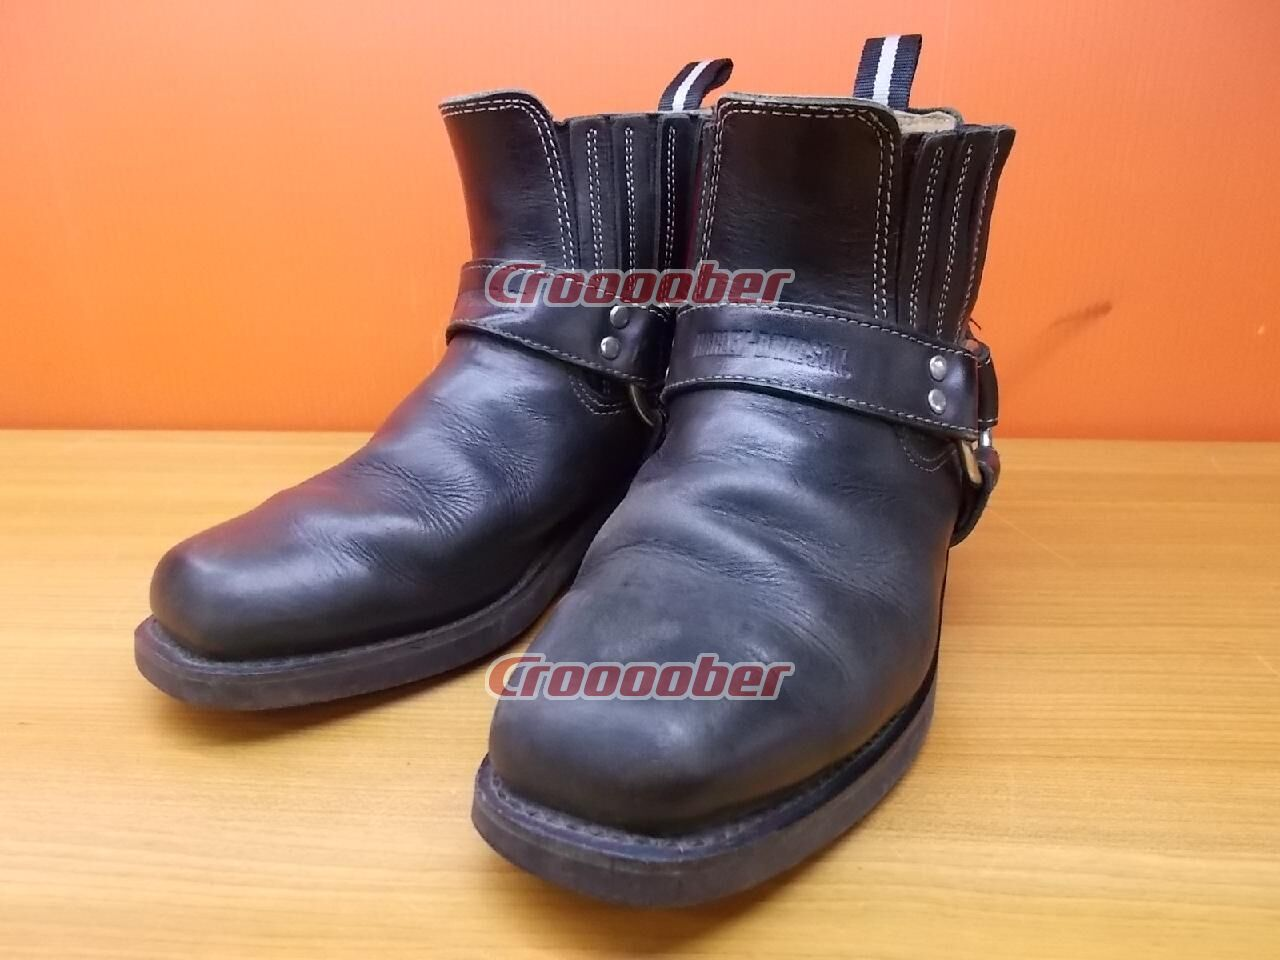 94b0d6c7bc9 Size: 6 And 1/2 Inch Around 24.5 Cm HarleyDavidson Harley Davidson Engineer  Boot | Boots & Shoes Accessories | Croooober